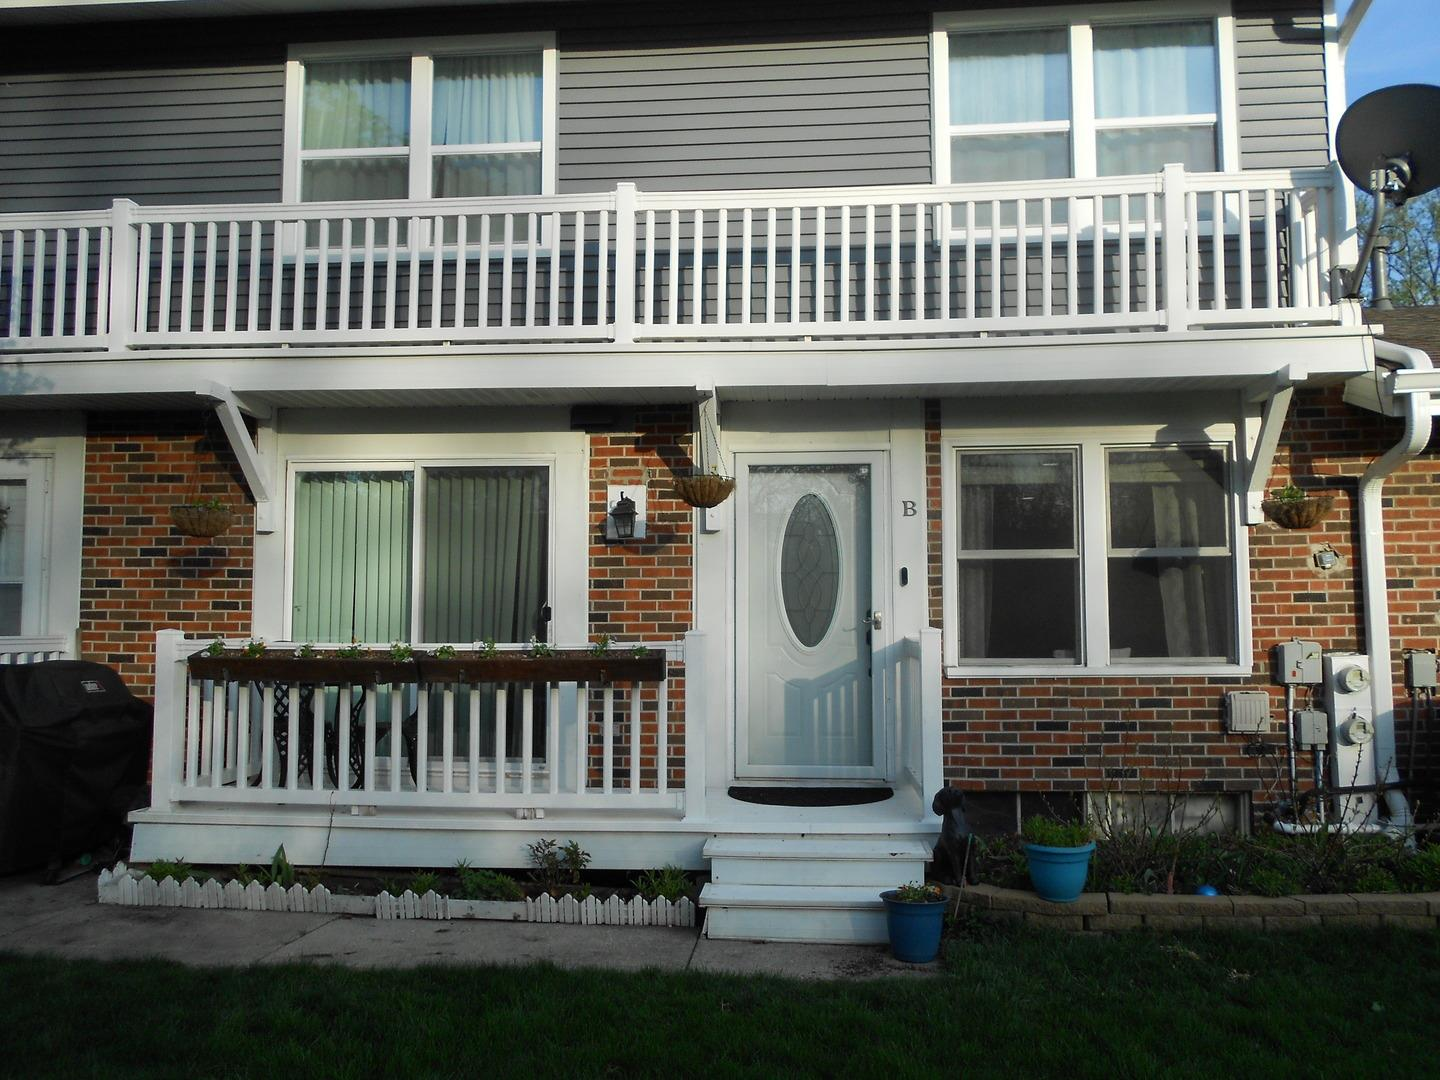 314 INDIANA Court #B, Bloomingdale, IL 60108 - #: 11057023